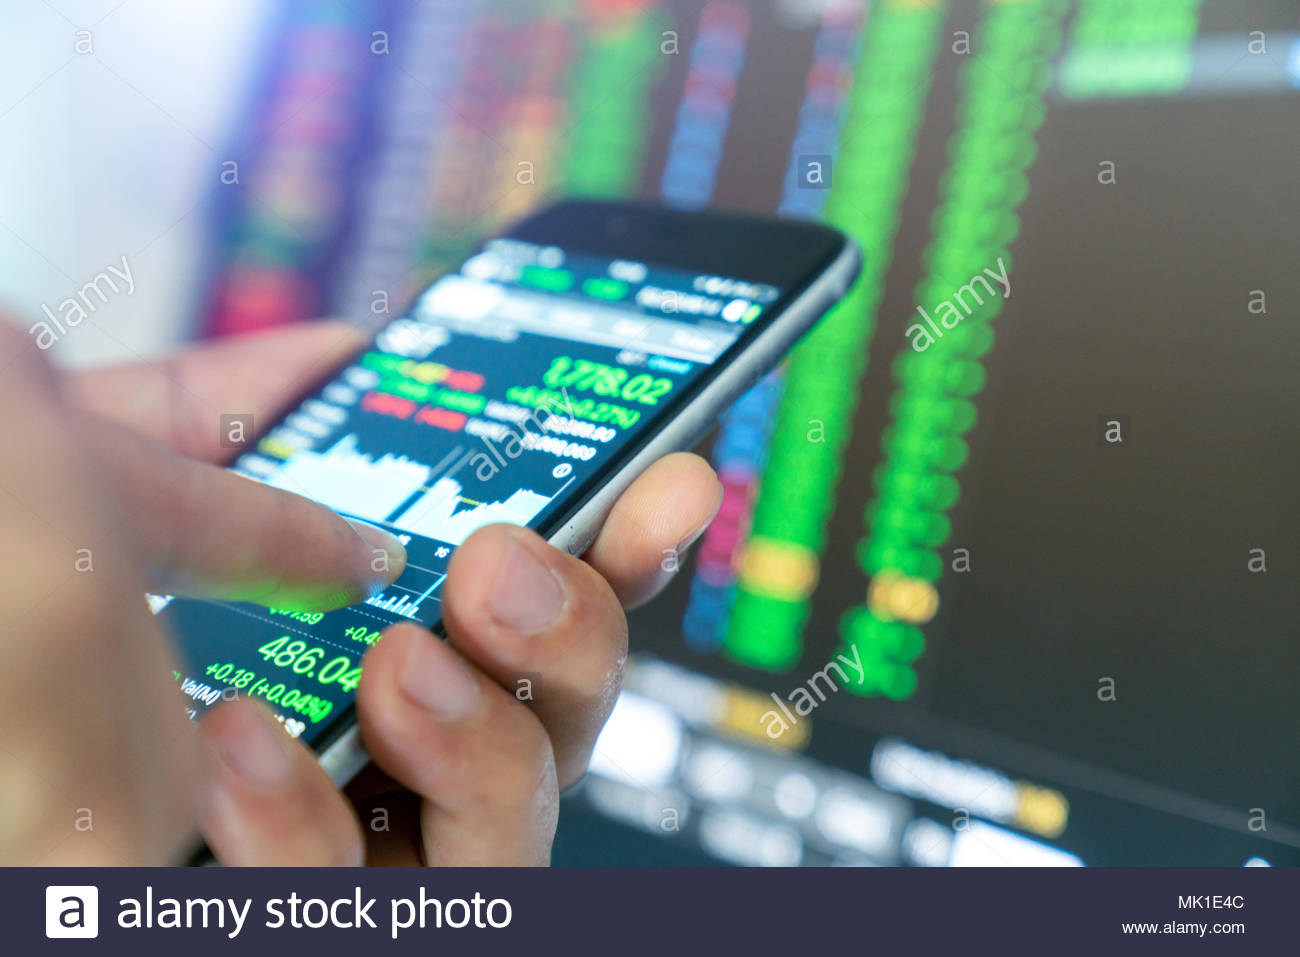 businessman using a mobile phone to check stock market data. - Stock Image